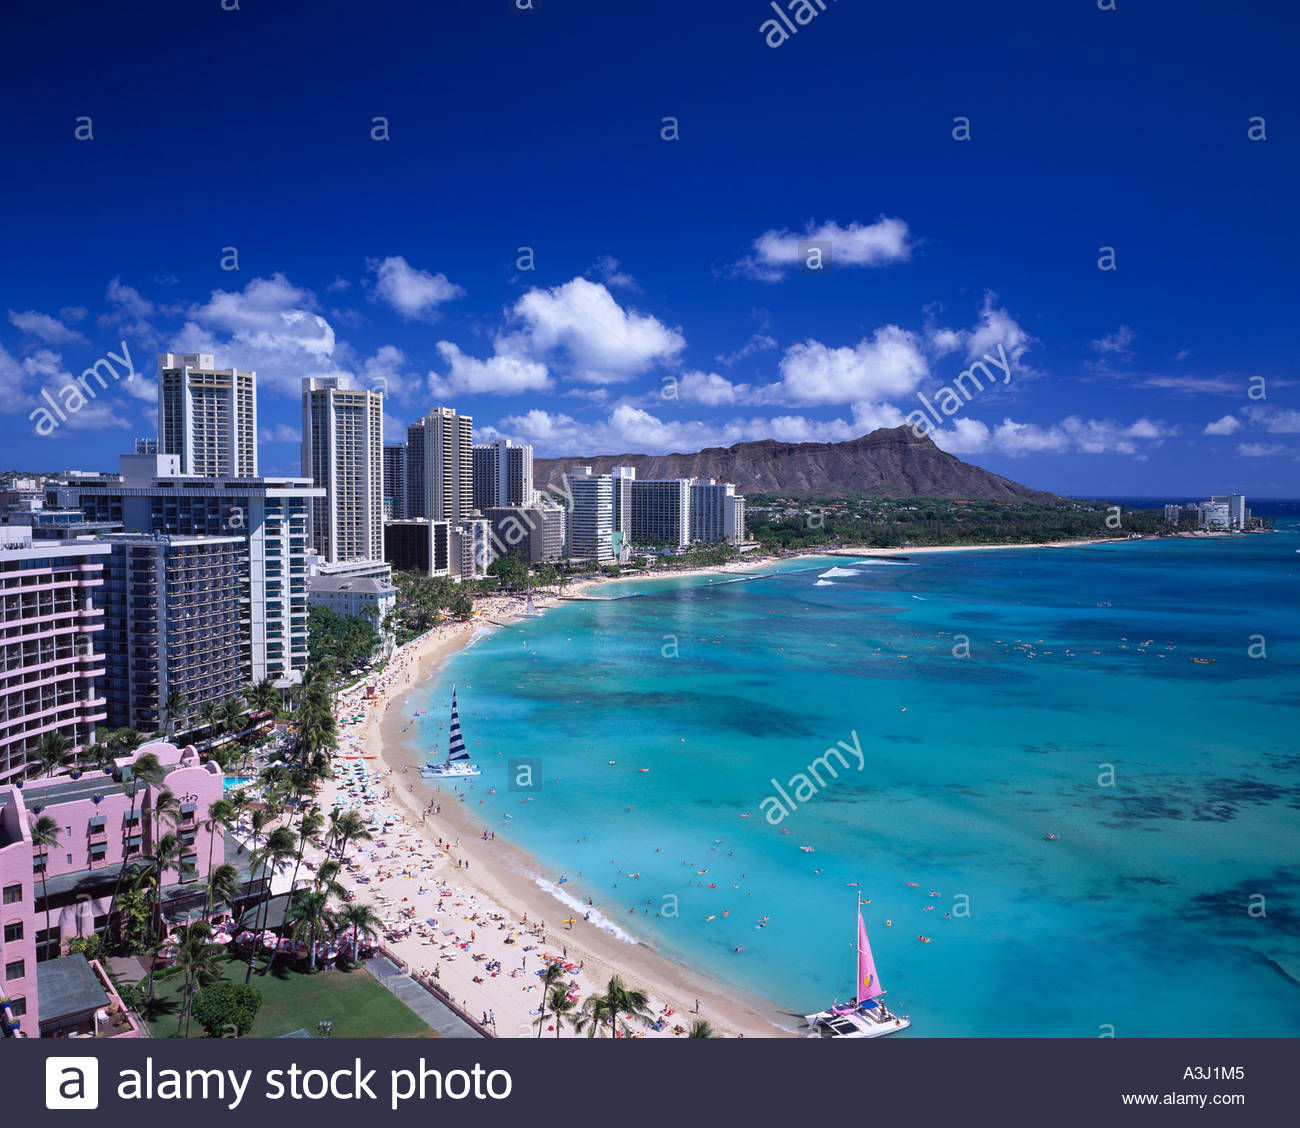 Stock photo waikiki beach resort blue sky sea oahu hawaii united states of america sandy beach hotel building